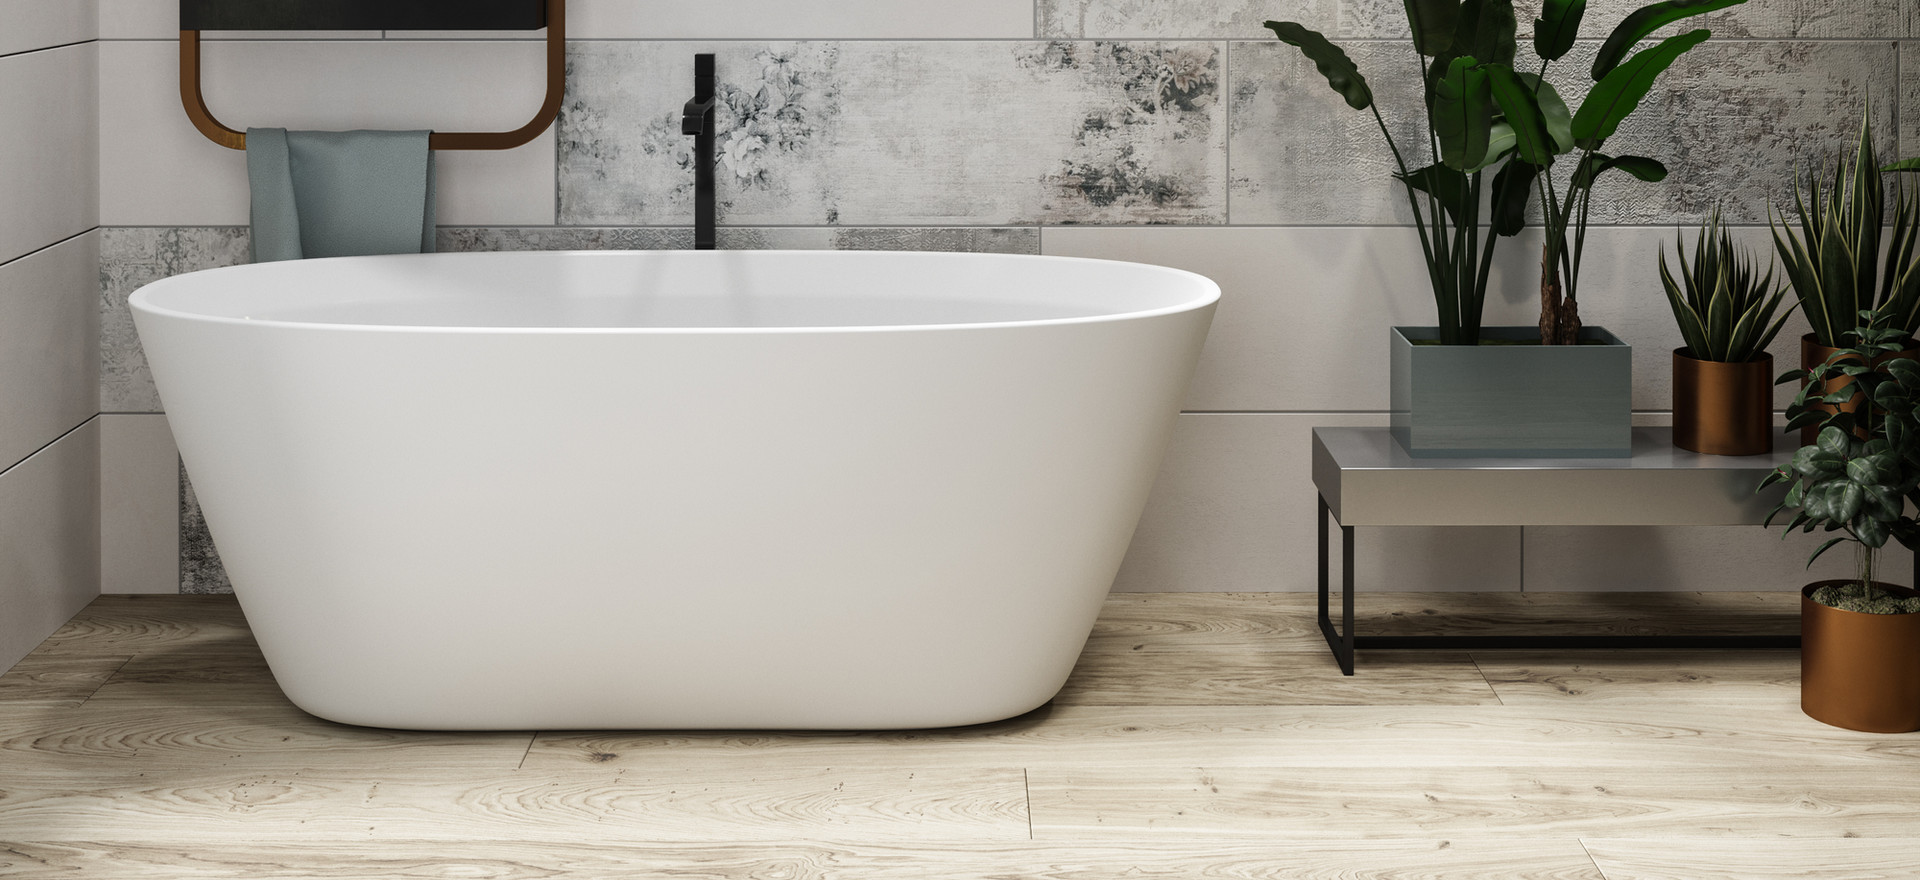 Borghese freestanding bathtub